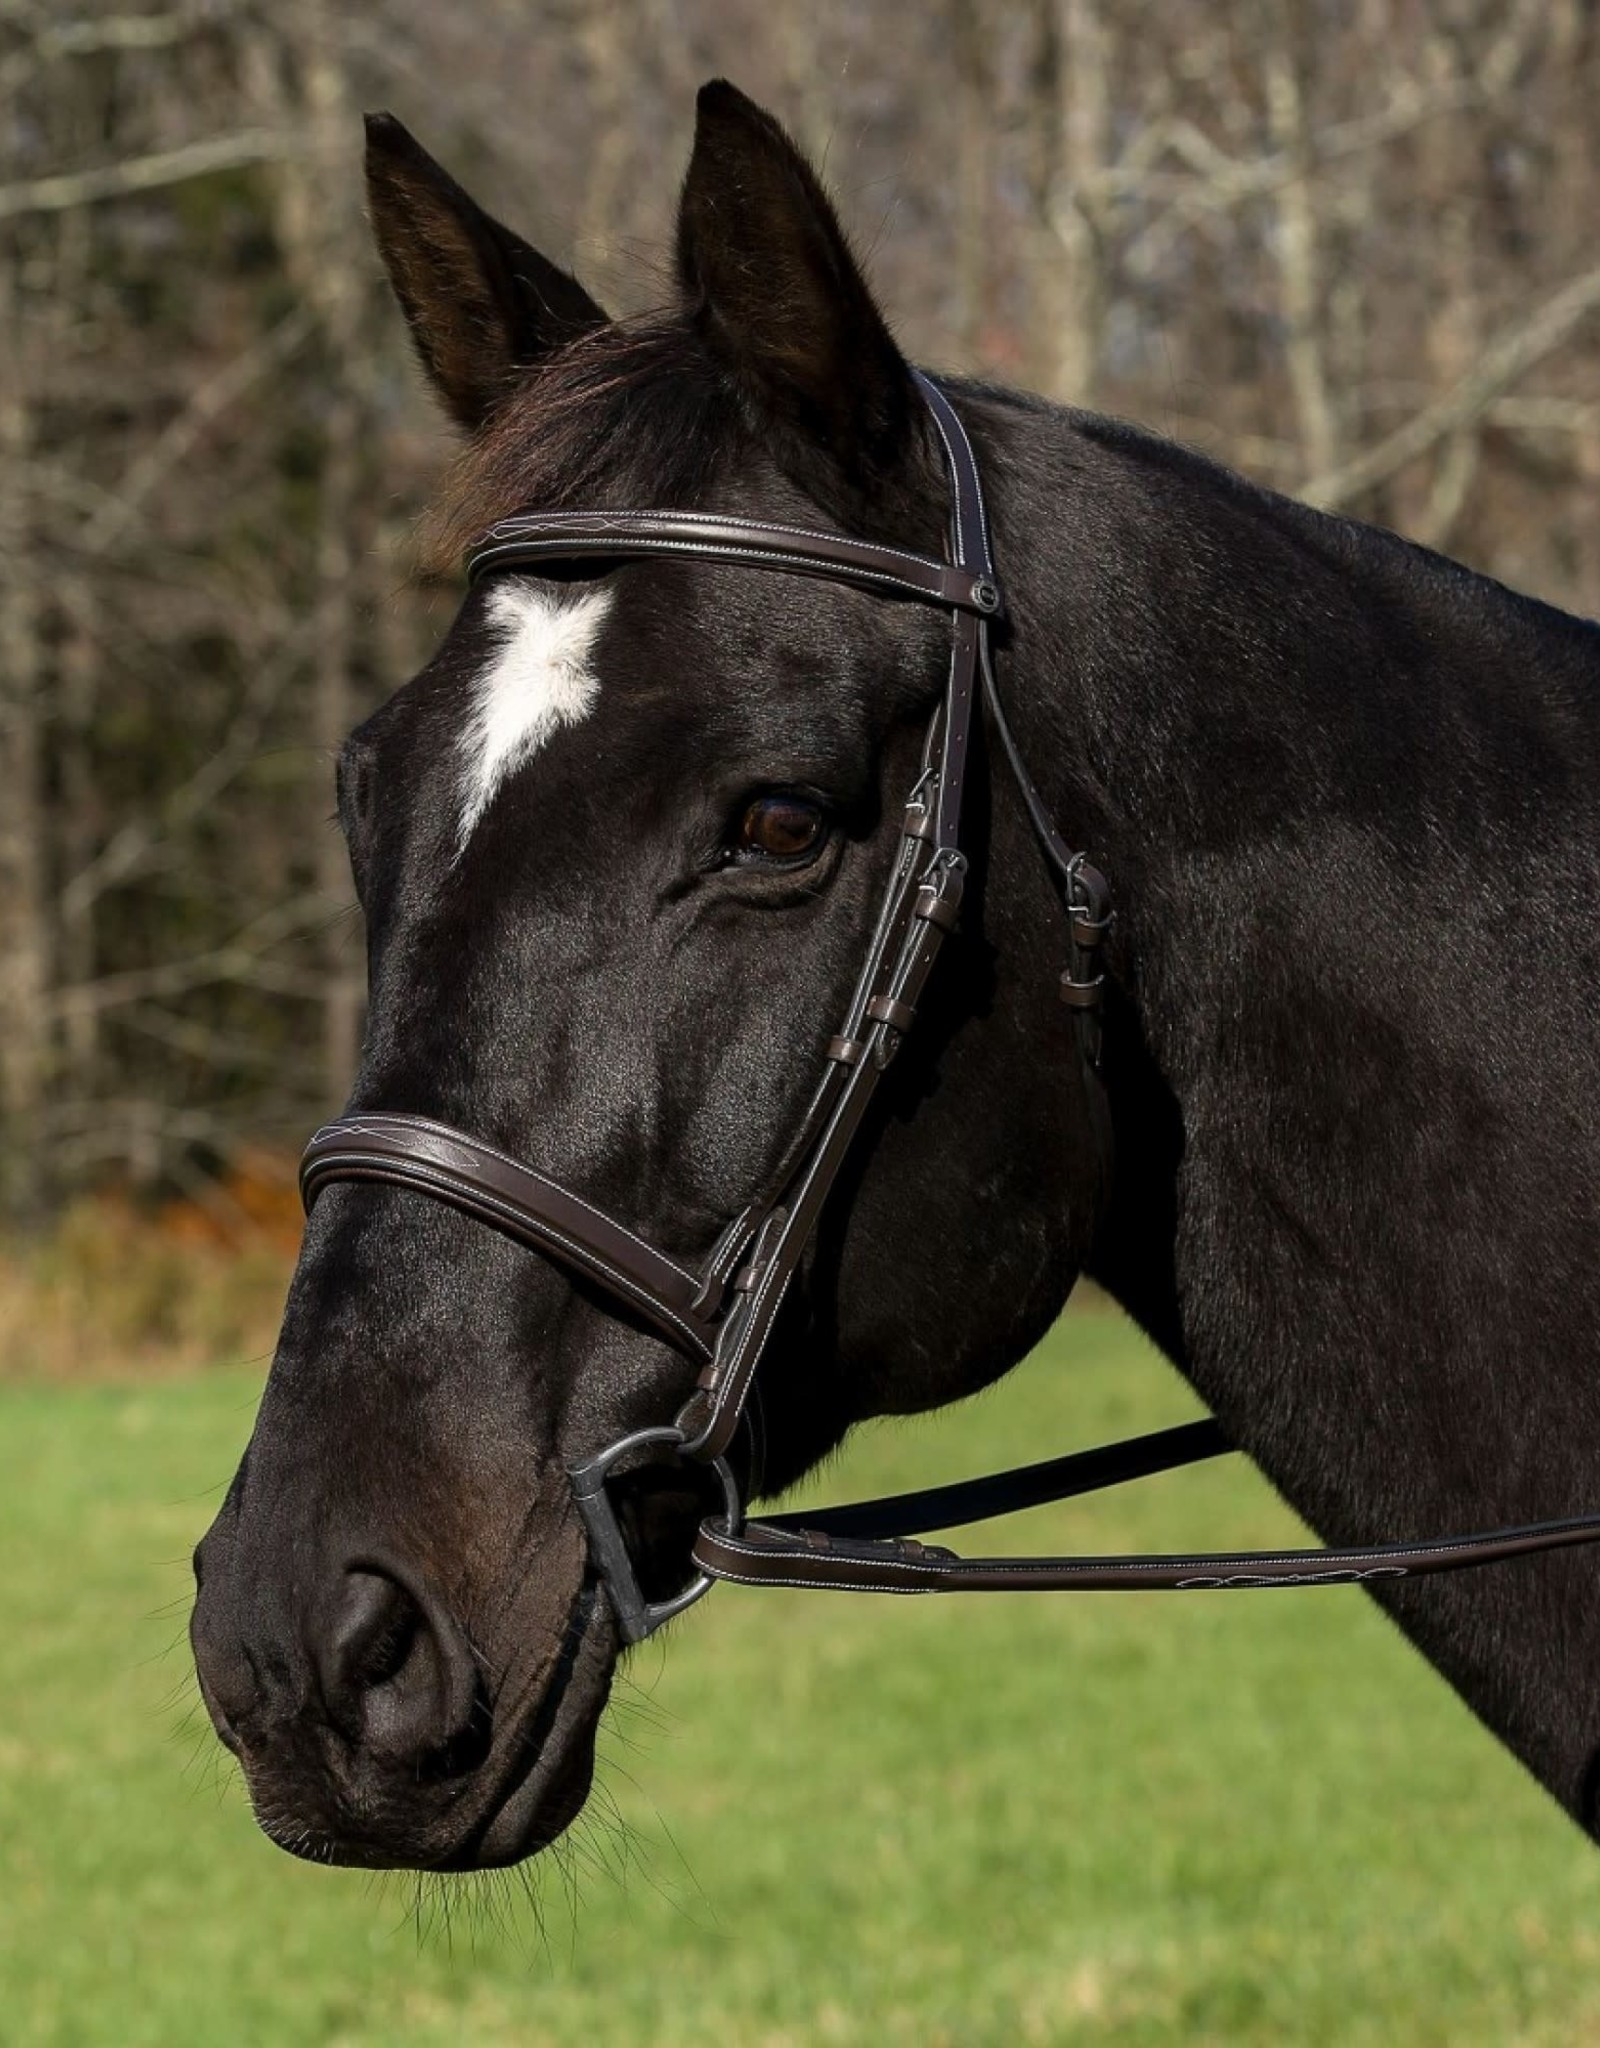 HDR  PRO MONO CROWN SQUARE RAISED BRIDLE WITH REINS